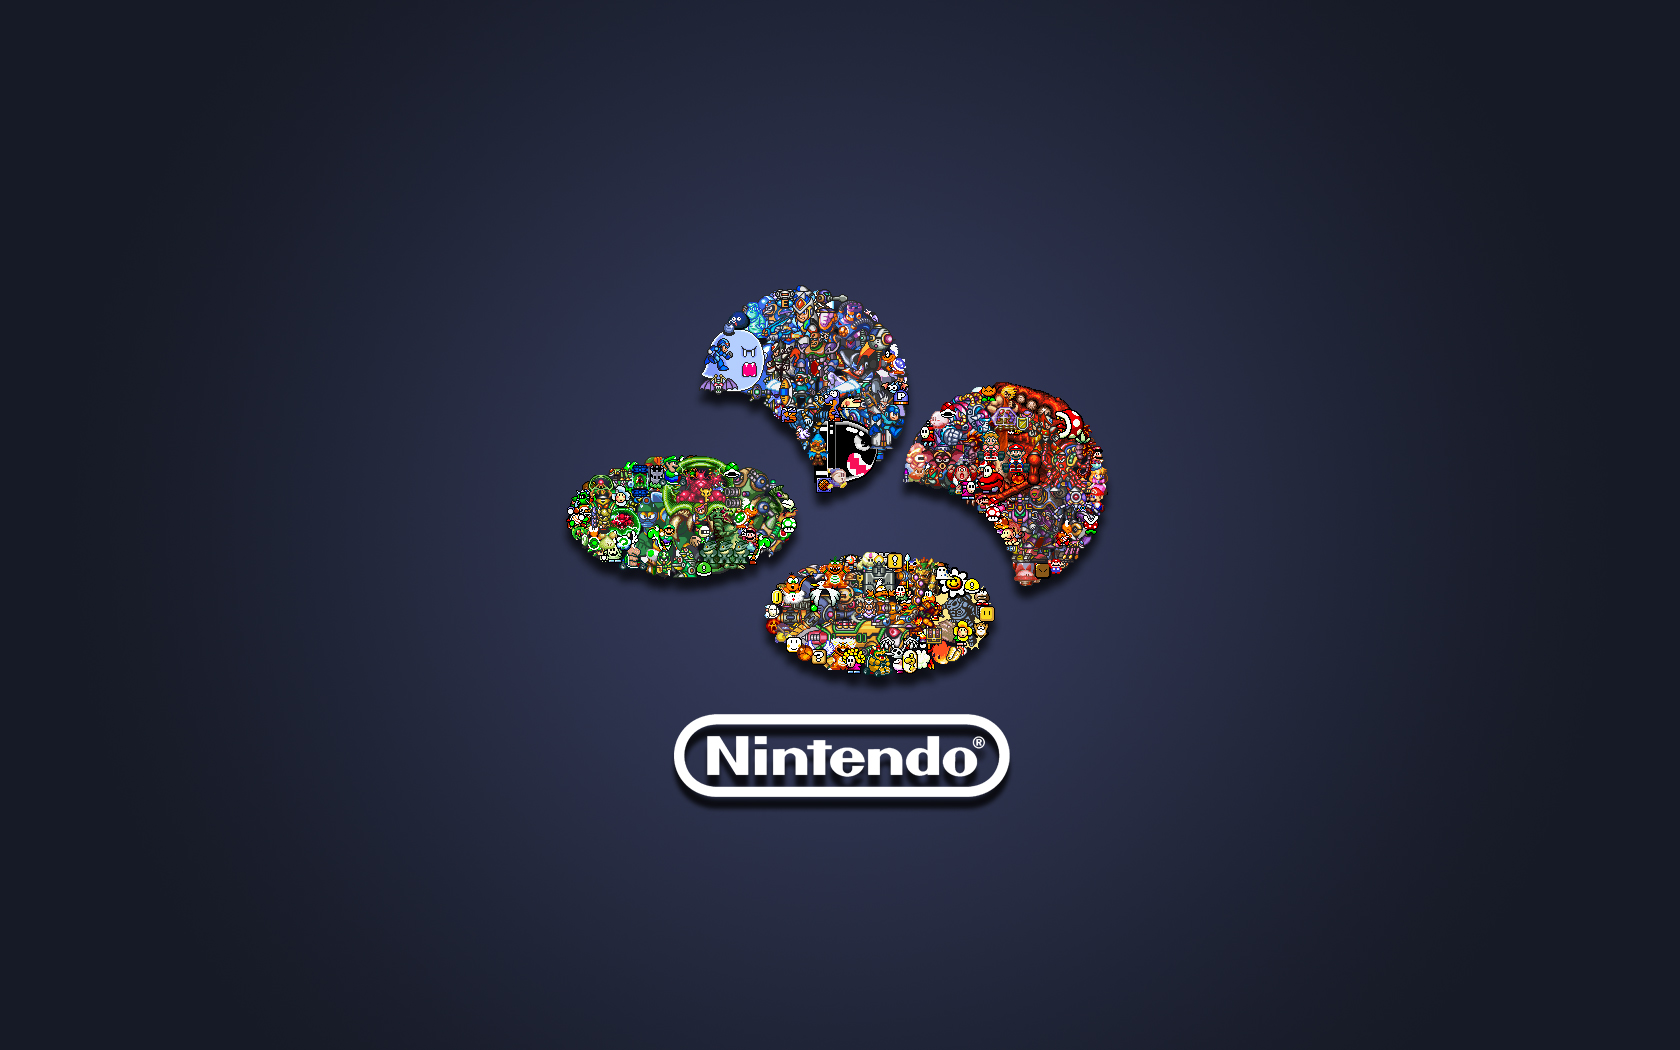 Nintendo Logo Wallpapers High Resolution – Epic Wallpaperz